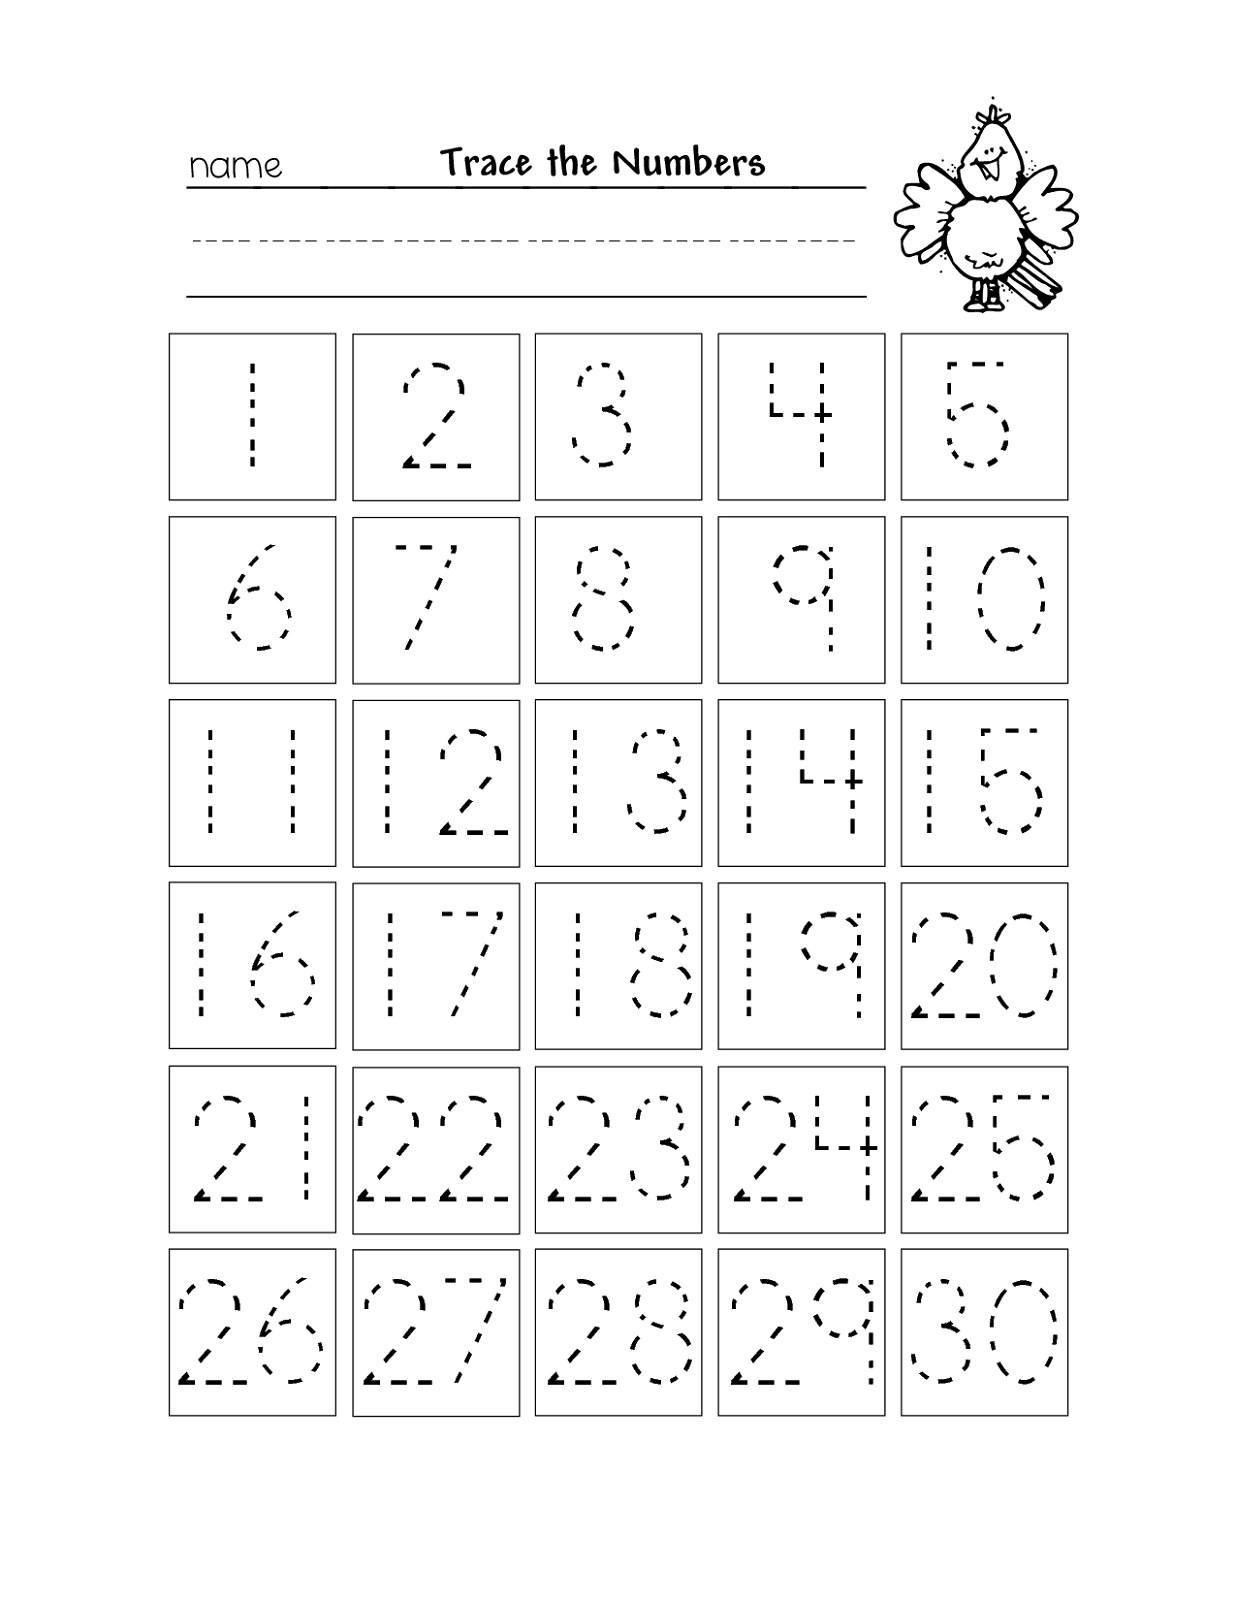 Worksheets : Number Facts Games Free Printable Math